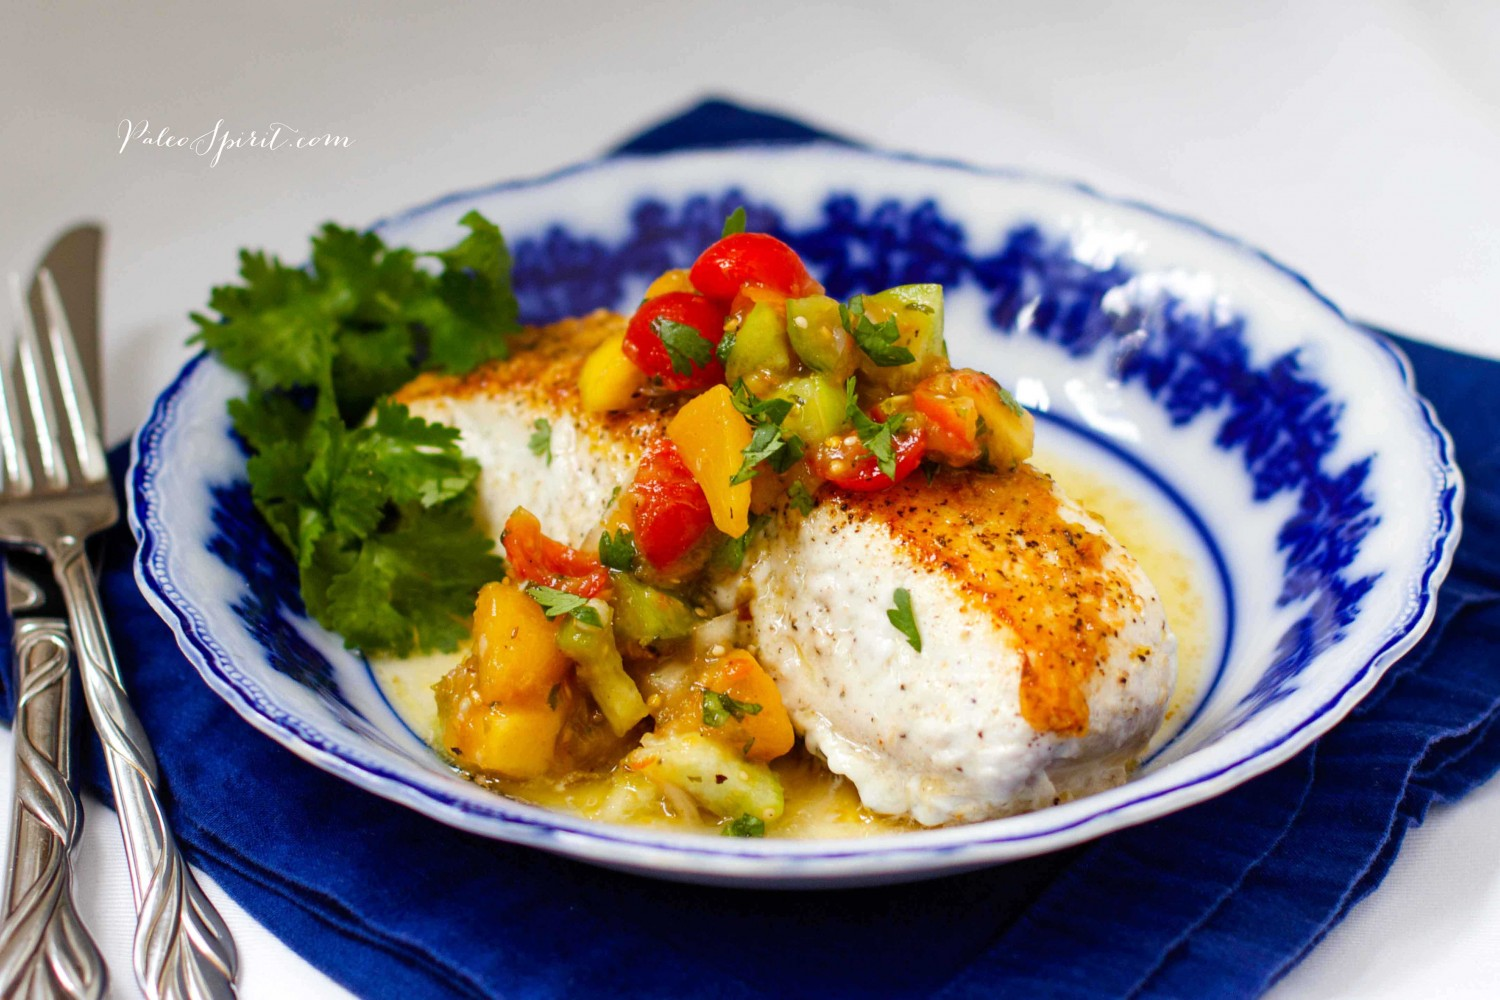 Pan-Fried Halibut with Roasted Tomatillo Peach Salsa | Paleo Spirit